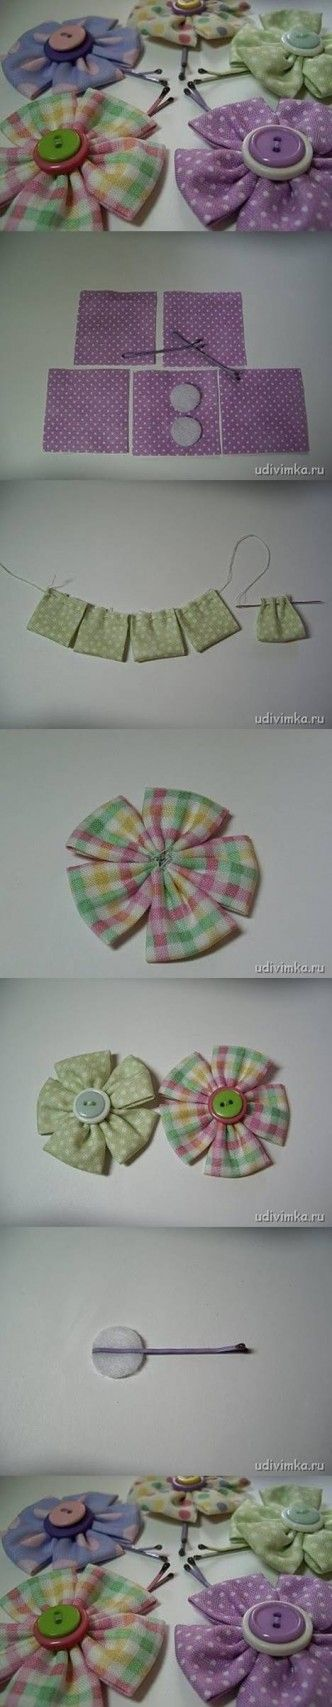 DIY Cute Fabric Flower Hairpin DIY Projects